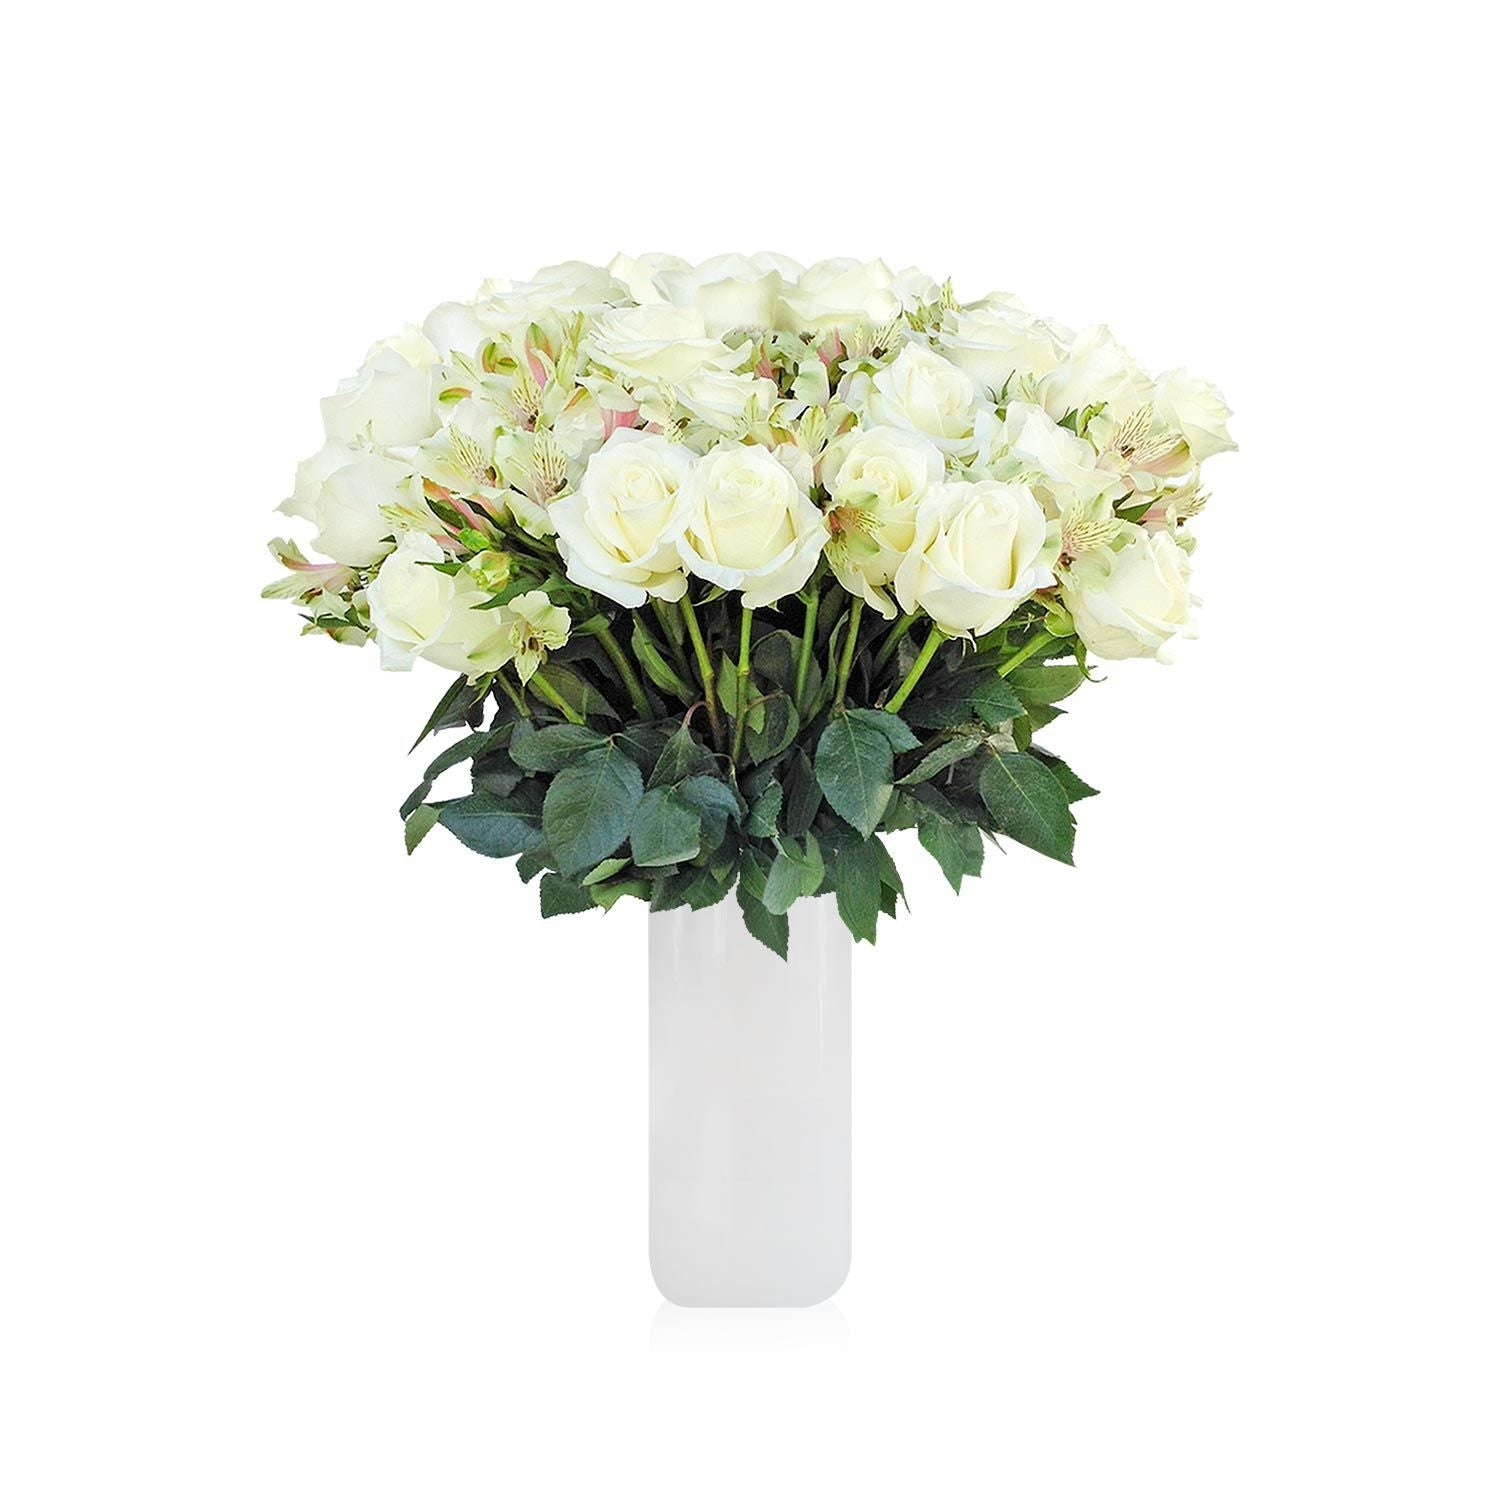 Home Perfect White Roses & Alstroemerias Bouquet (36 Roses + 14 Alstroemerias) - Bloomsfully Wholesale Flowers